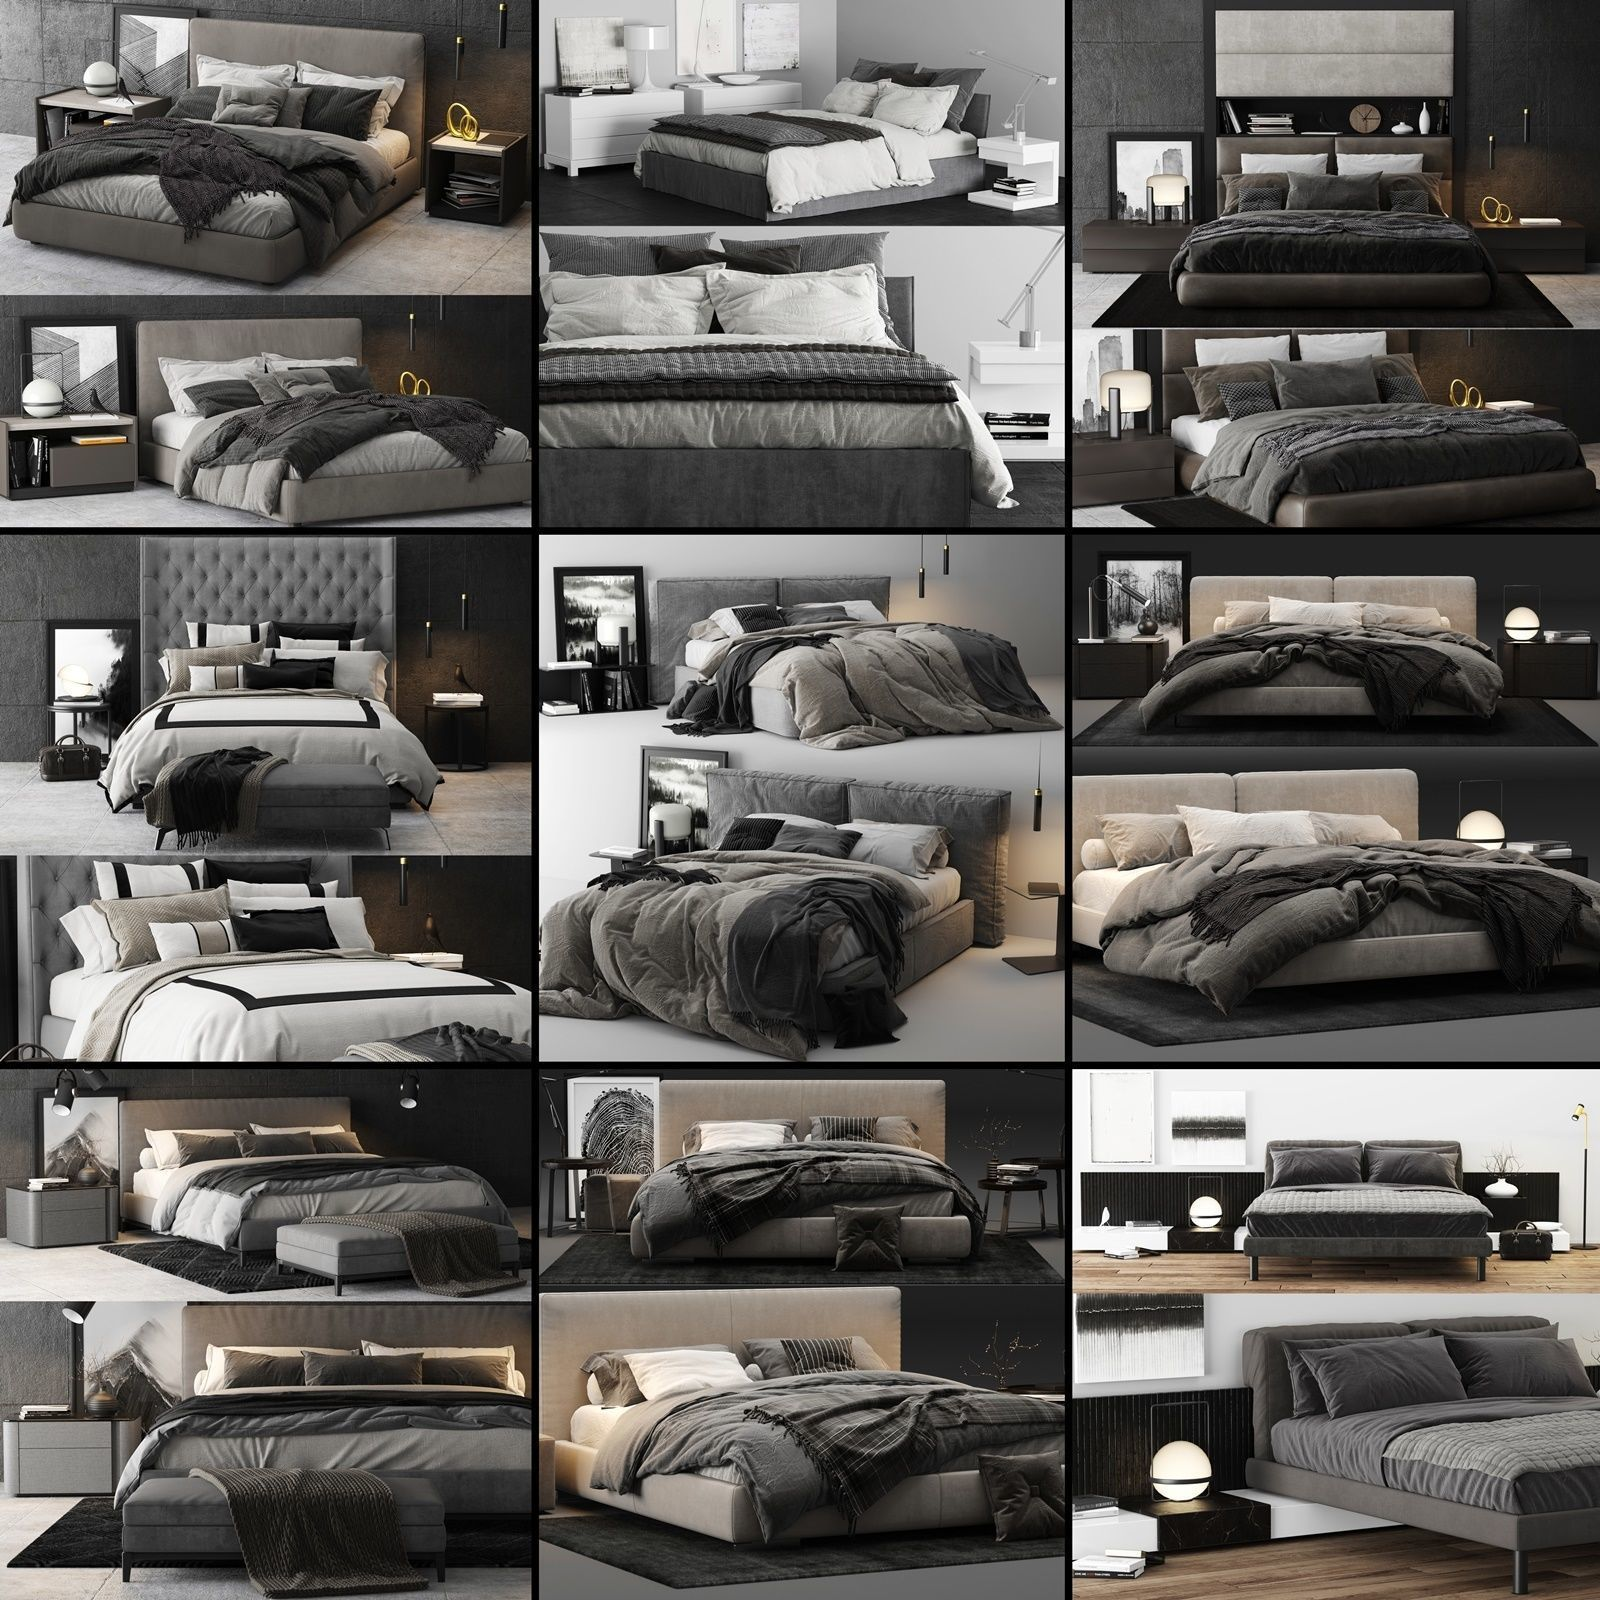 Bed Colection 02 - 10 Items 3D model